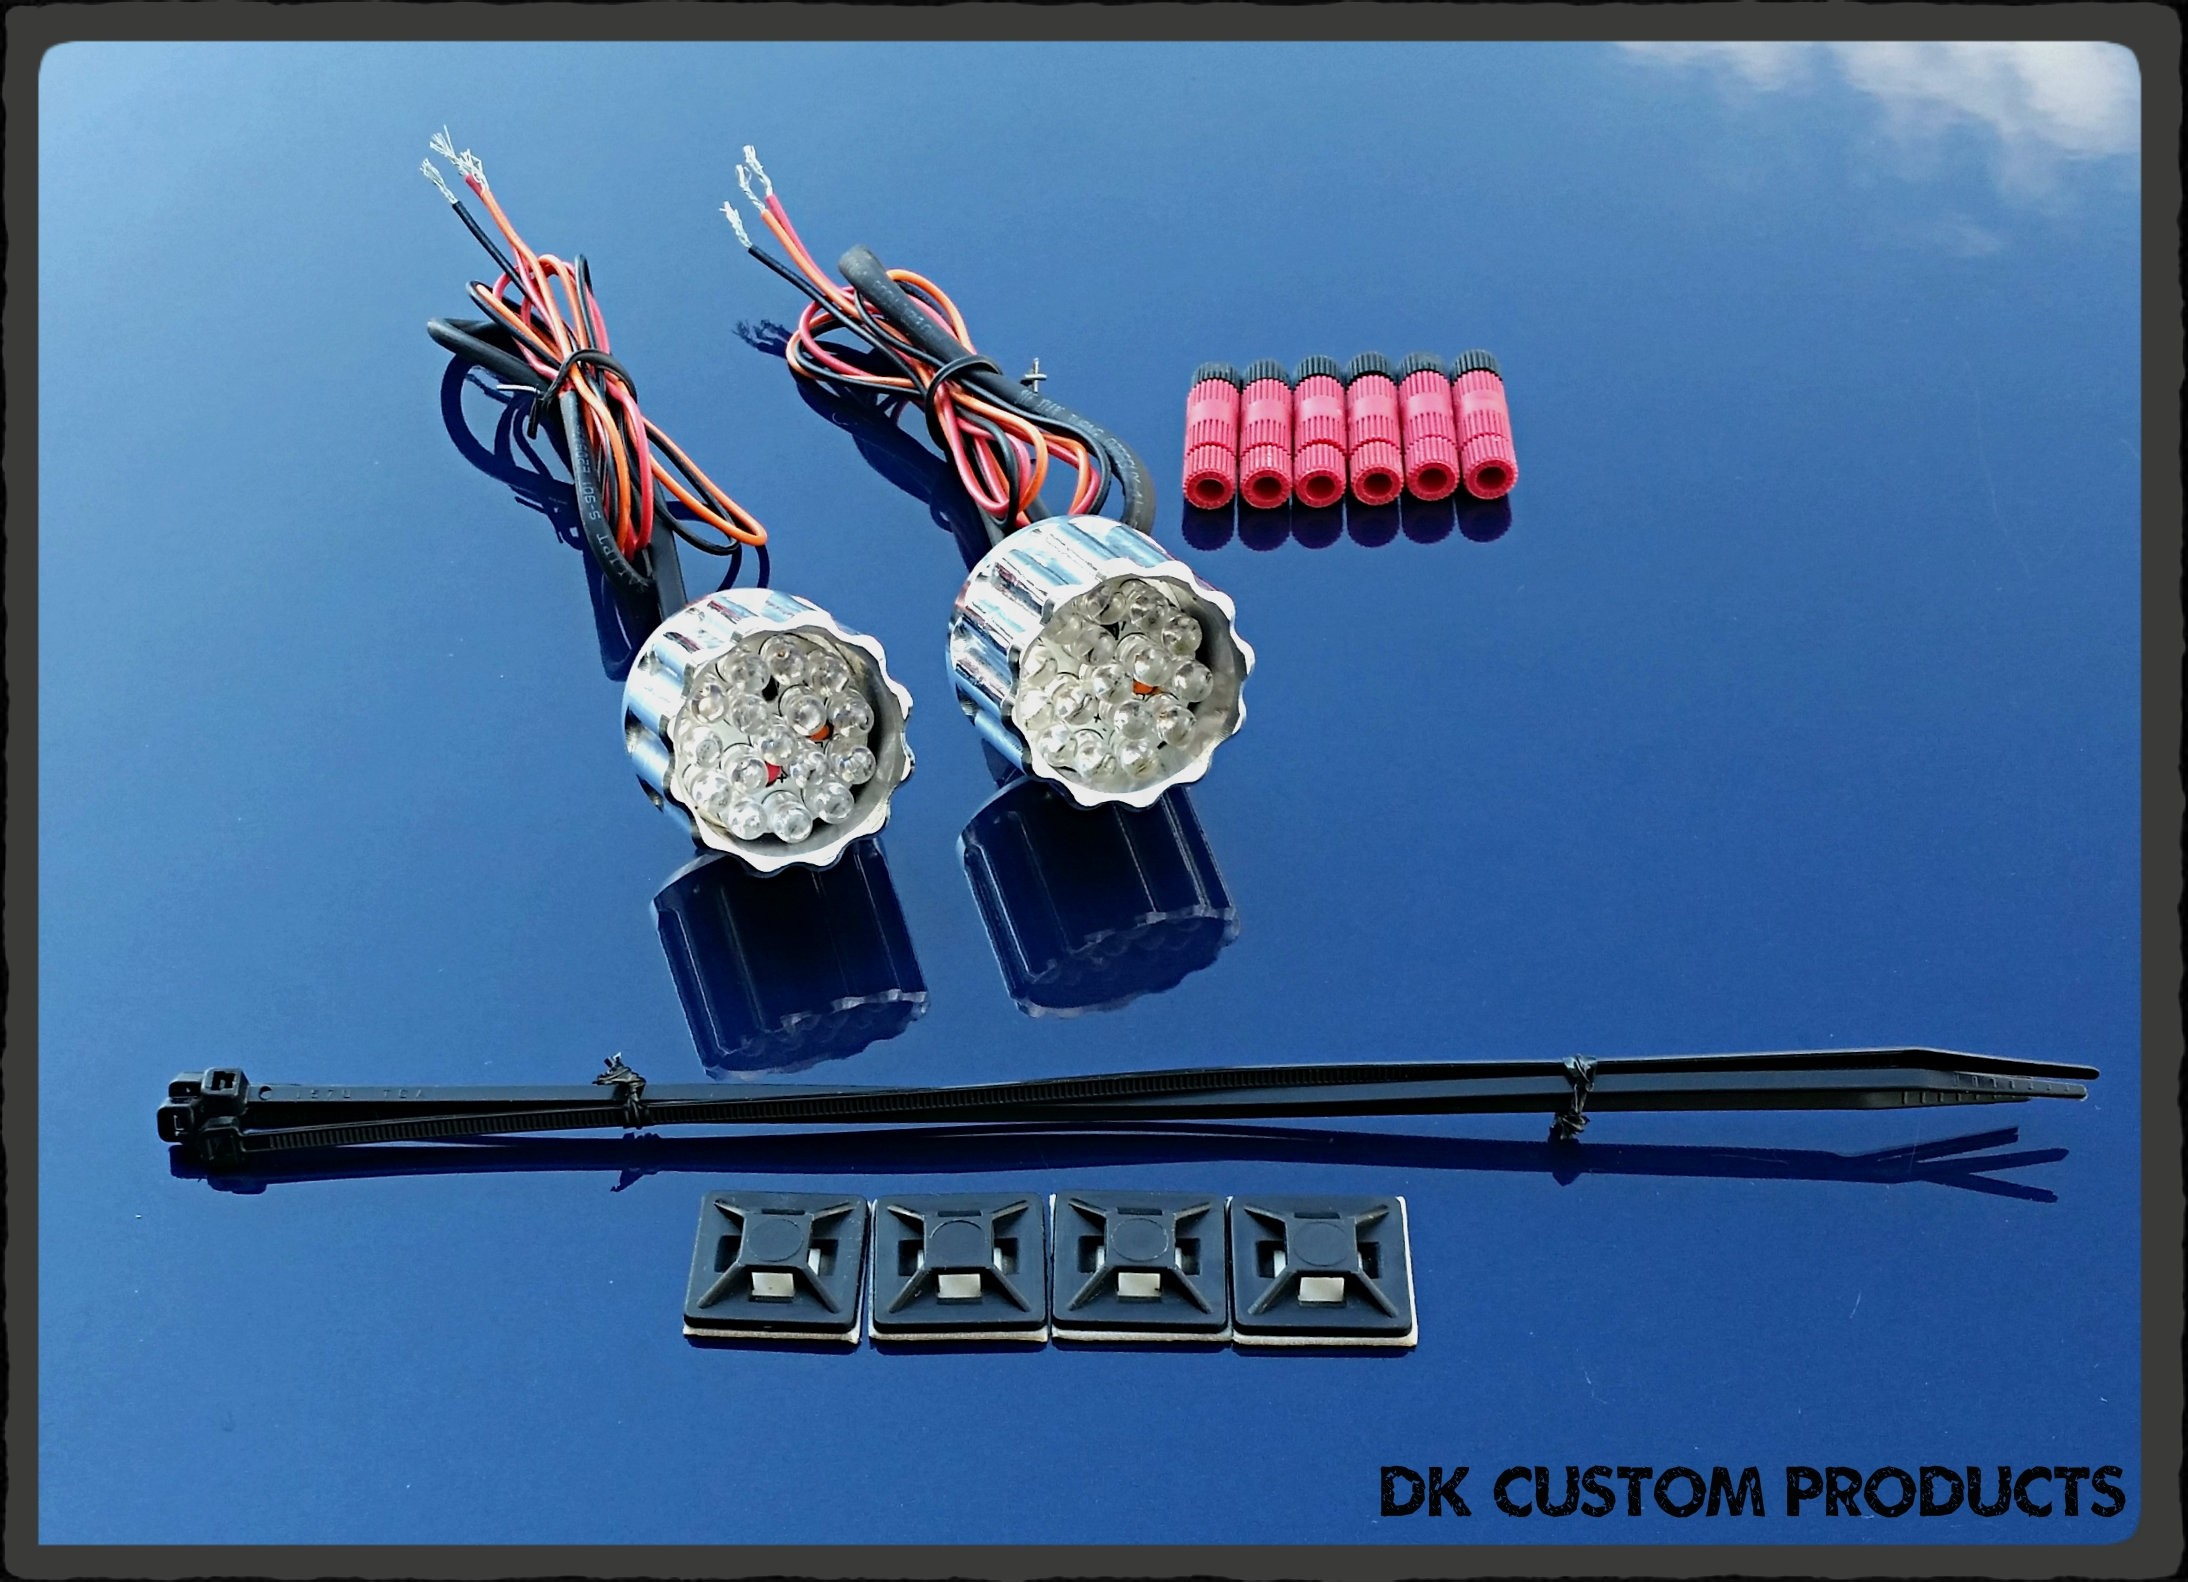 DK Custom 22LR Billet Run Brake Turn LED Lights Black Polished Harley Sportster Dyna Softail